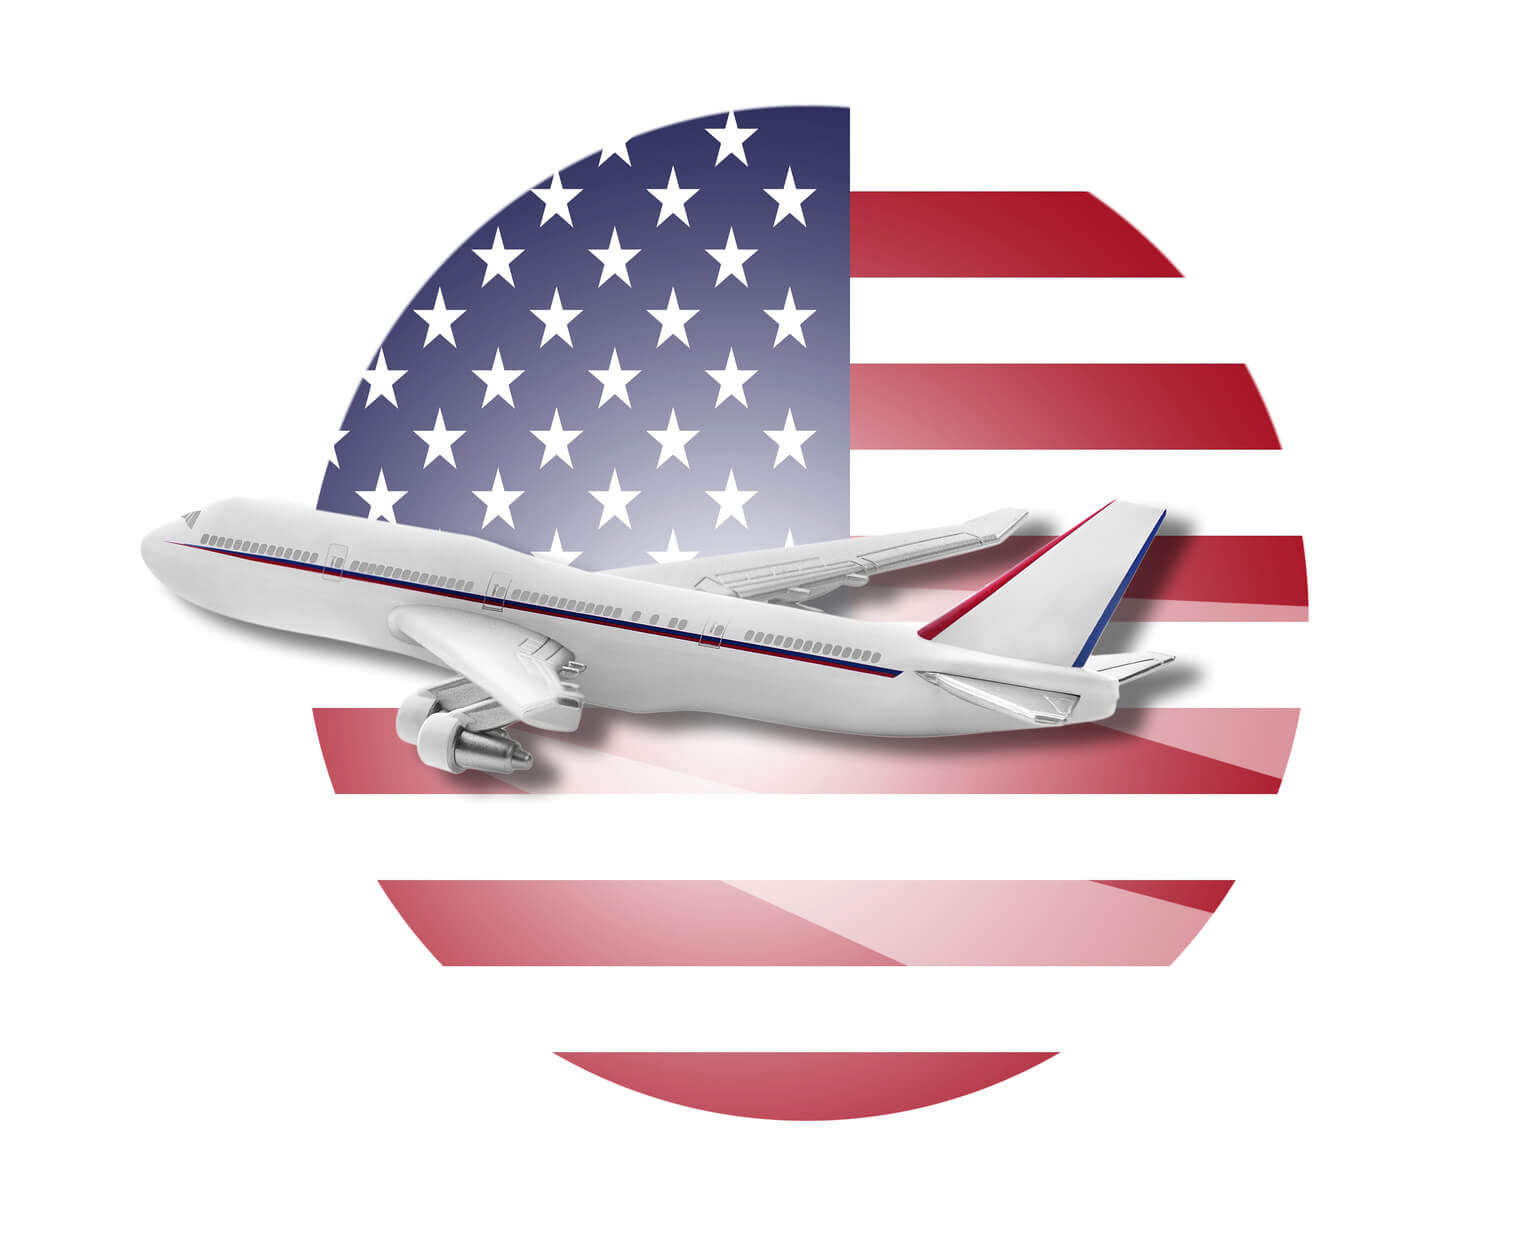 Plane and United States flag.